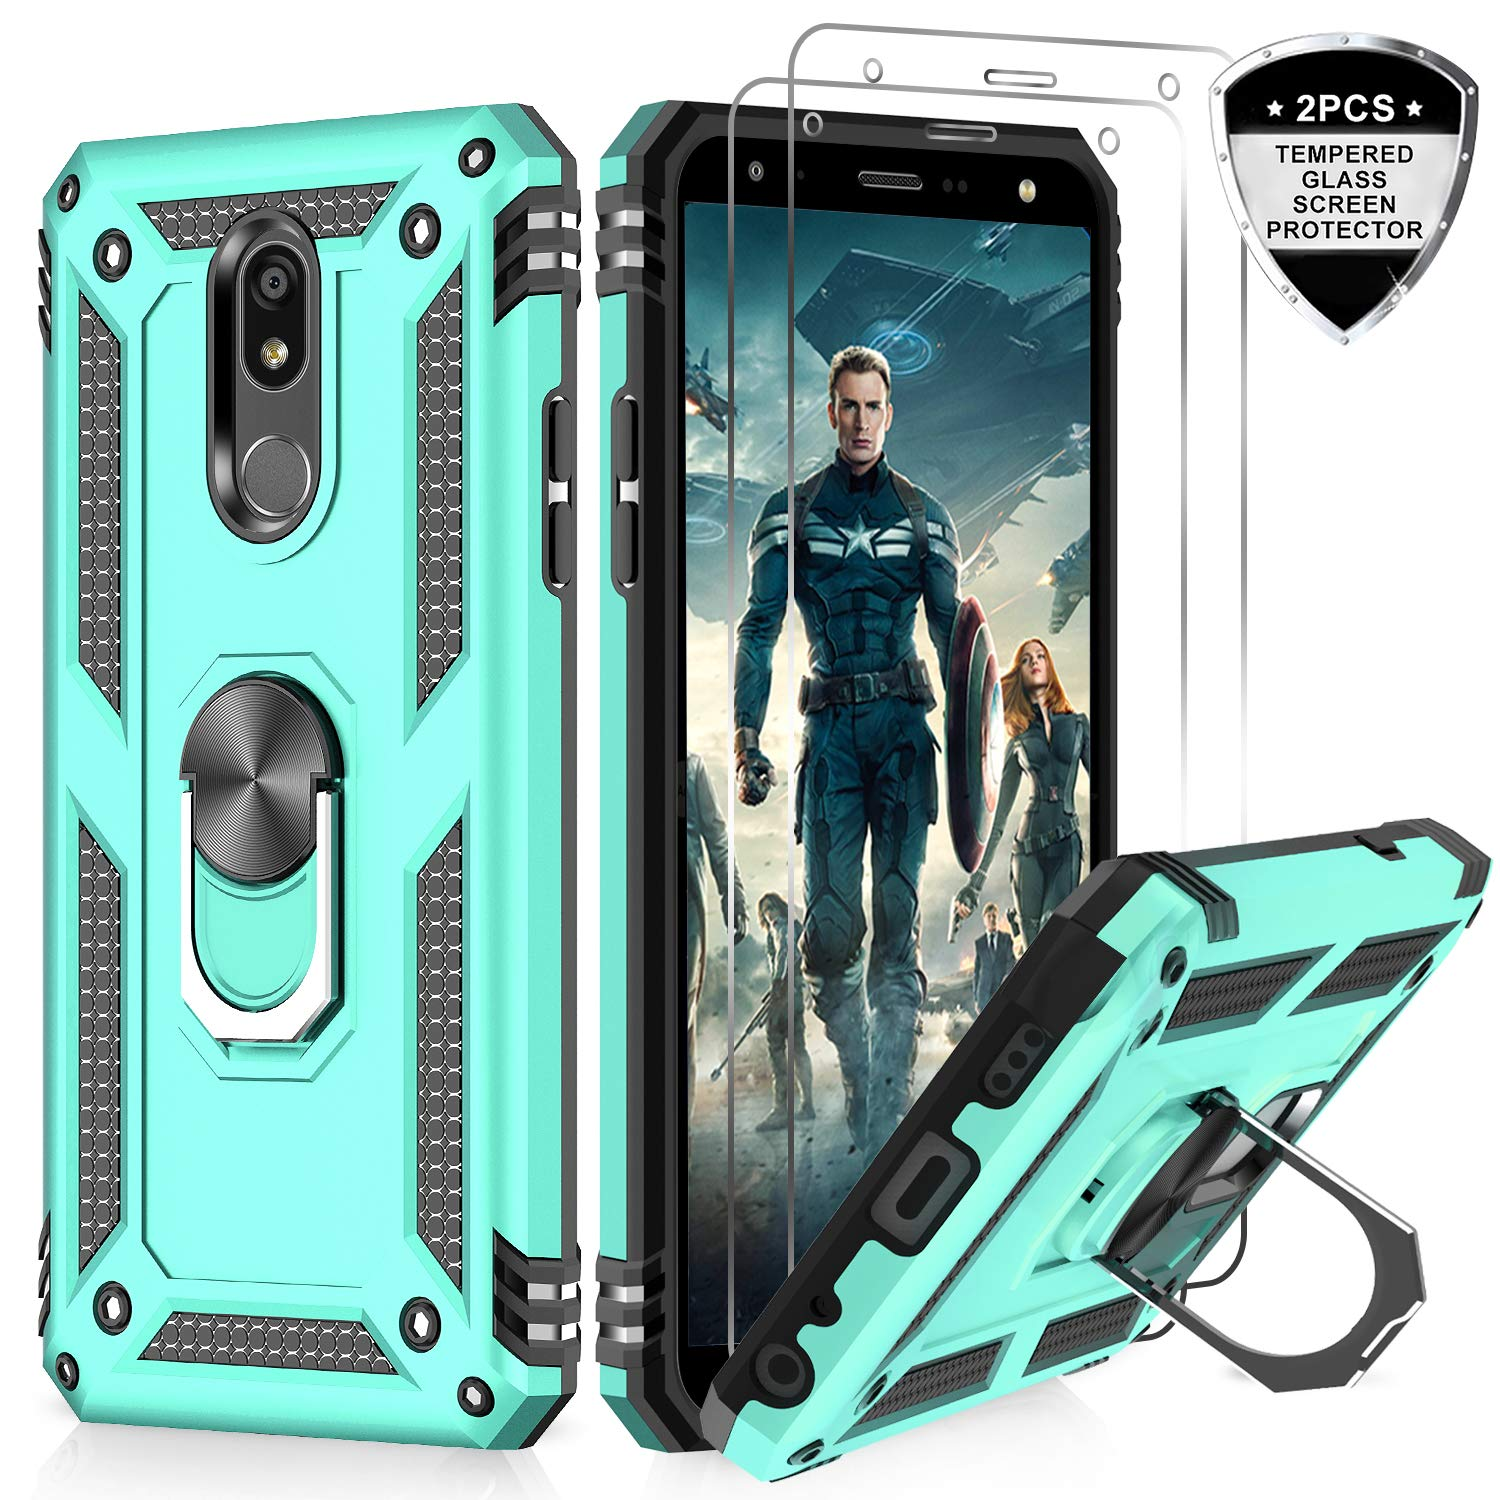 LeYi LG Aristo 4 Plus/K30 2019/Tribute Royal/Escape Plus/Journey LTE/Arena 2 Case with Tempered Glass Screen Protector, [Military Grade] Phone Case with Magnetic Mount Kickstand for LG Prime 2, Mint